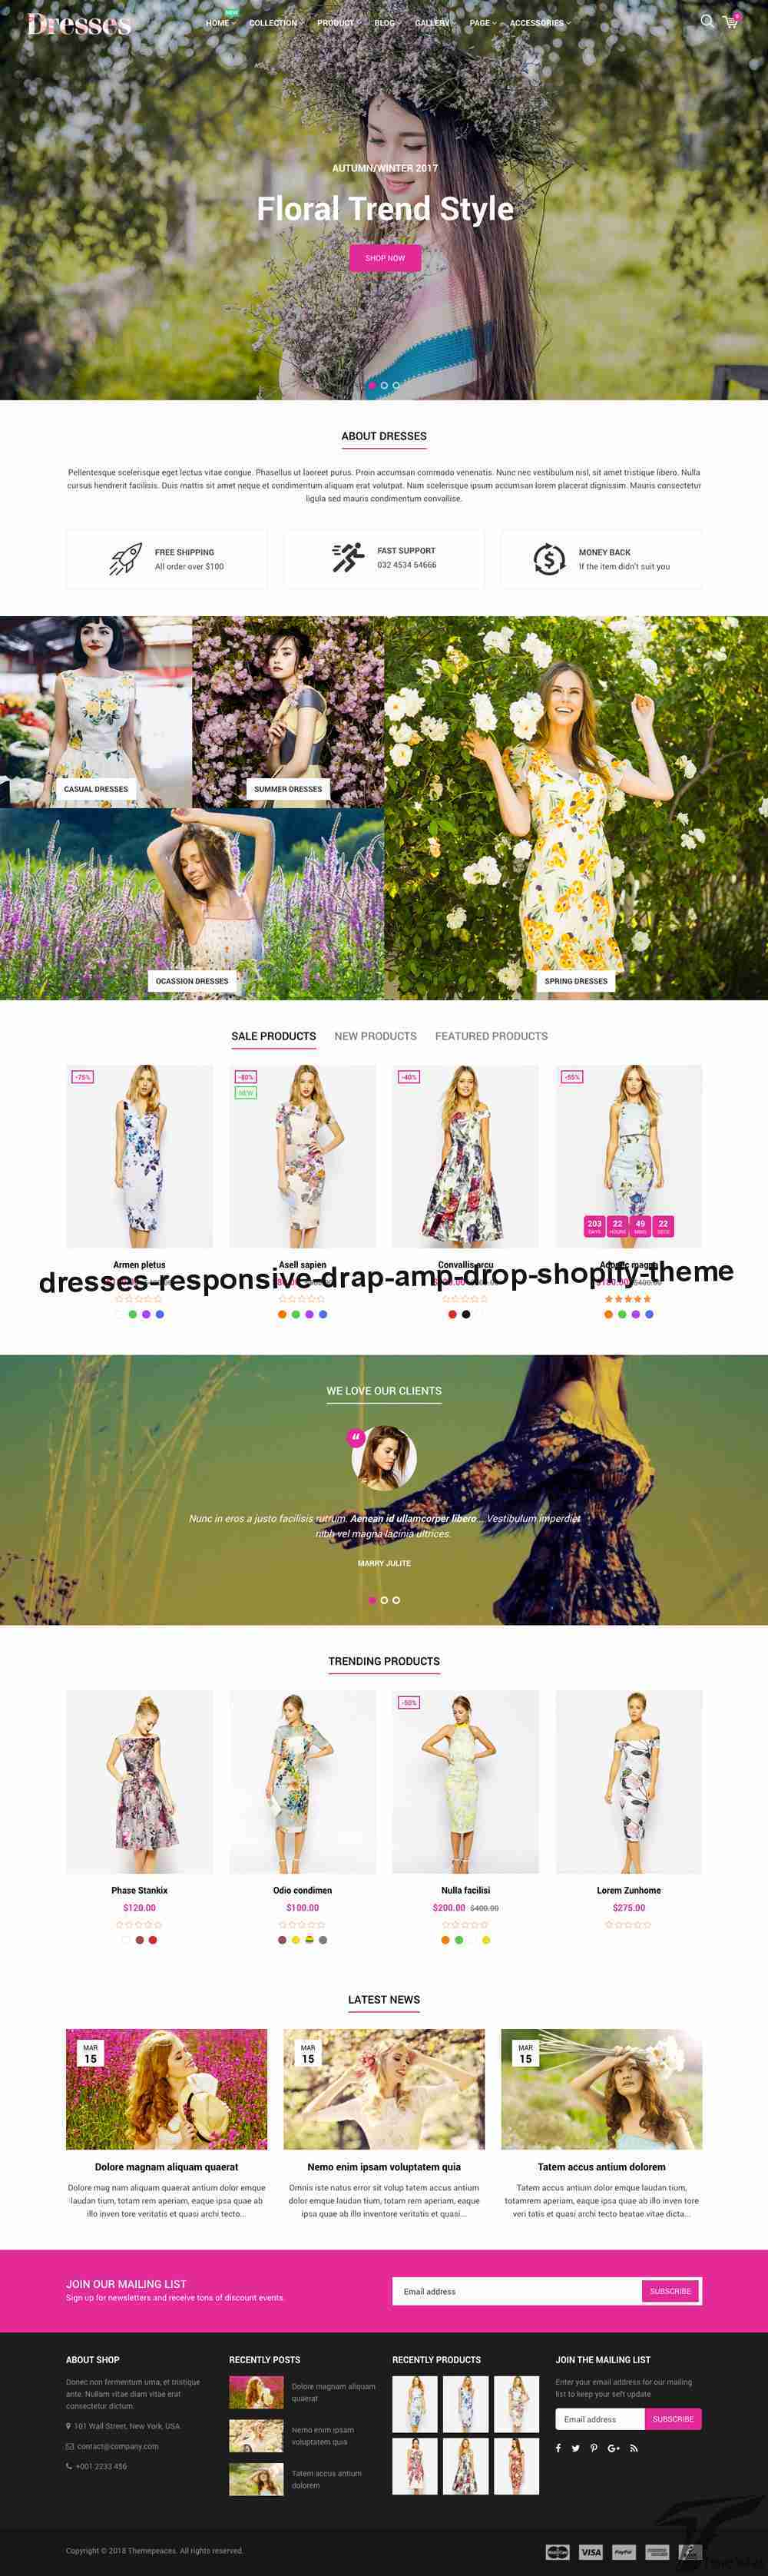 https://images.besthemes.com/images/h1_dresses-responsive-drap-amp-drop-shopify-theme9-_-247969075/preview/09_preview_home_8.jpg